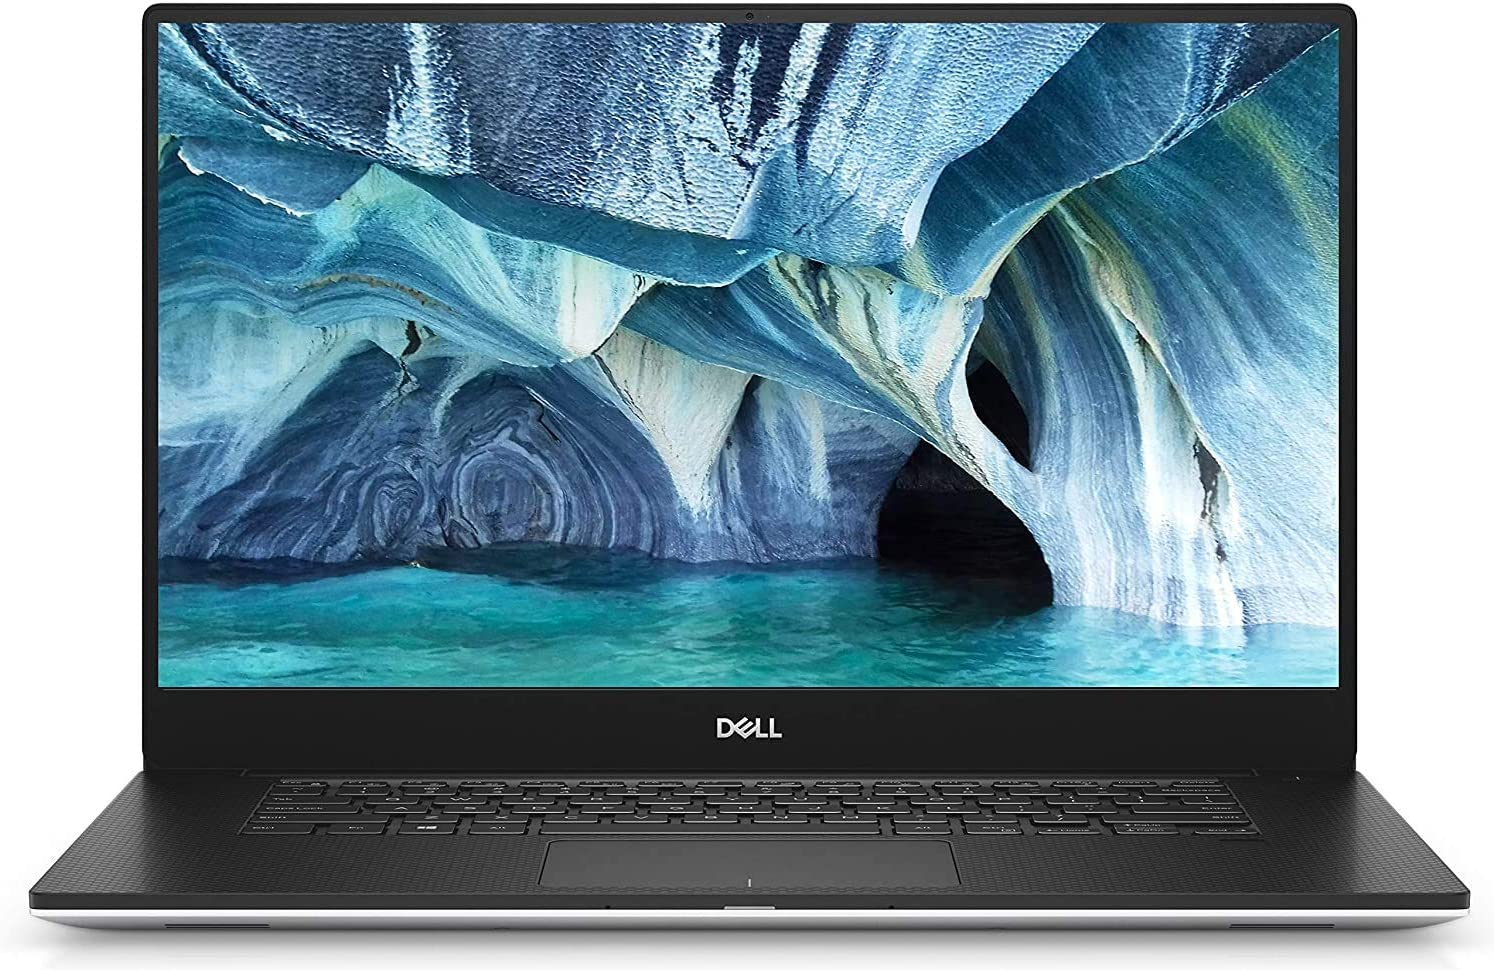 Dell XPS 15 7590 - 15.6 pulgadas - 4K UHD Non-Touch- 512GB SSD 2.6GHz i7 16GB RAM (6-Core i7-9750H, NVIDIA GTX 1650, Windows 10 Home)  - Silver